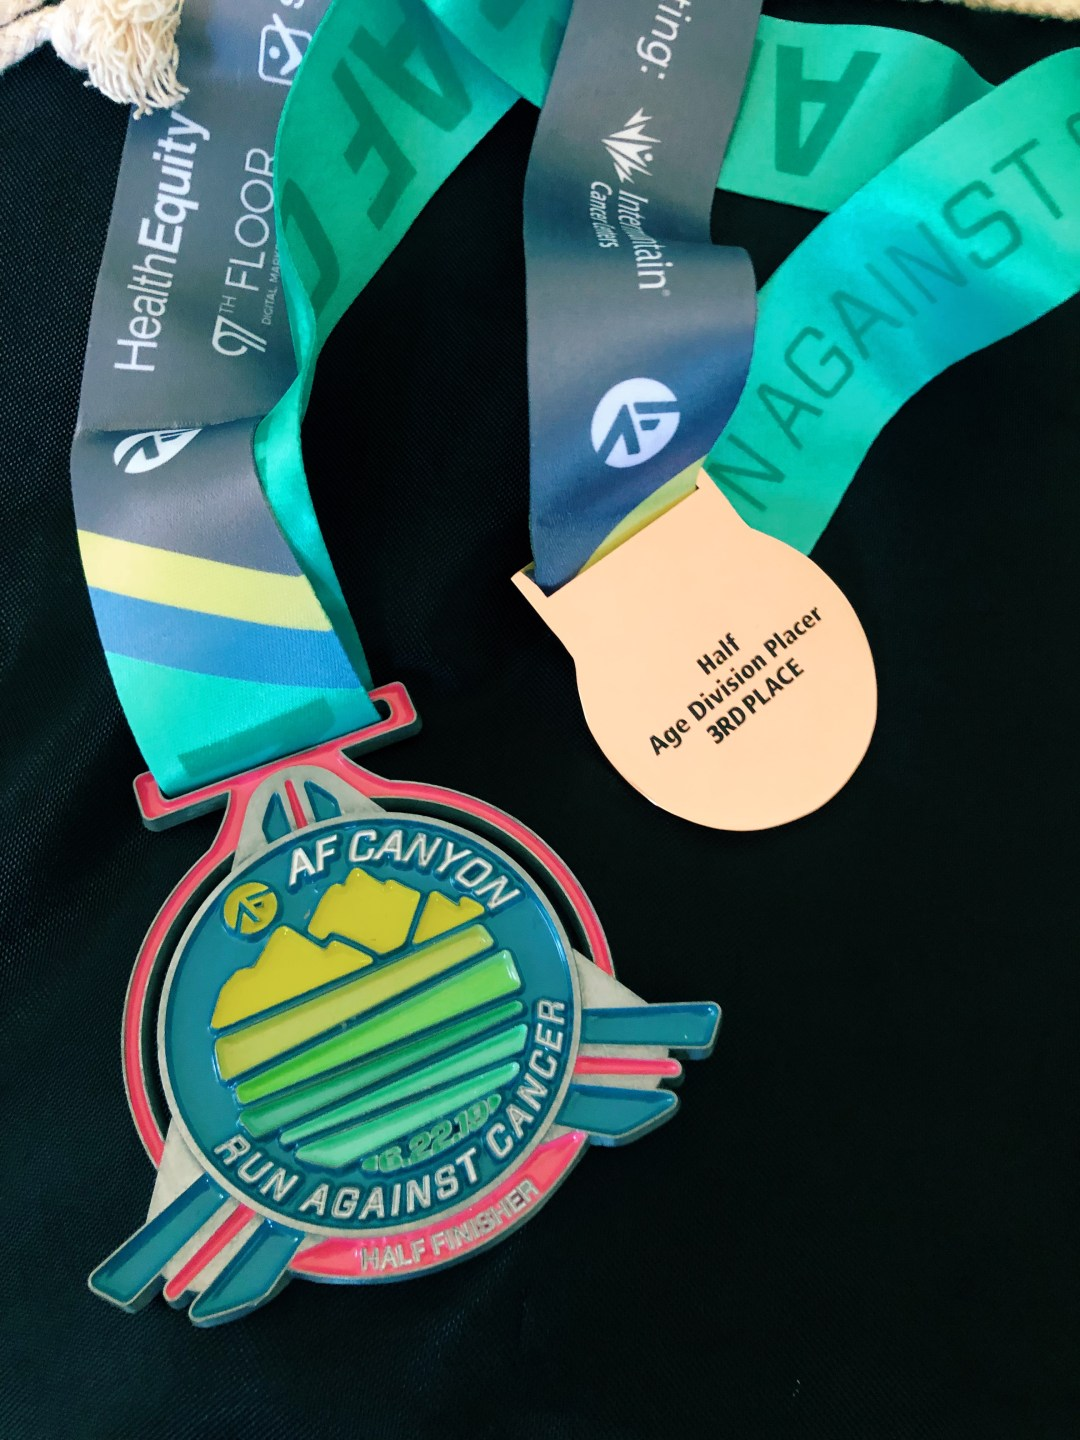 af canyon run medals